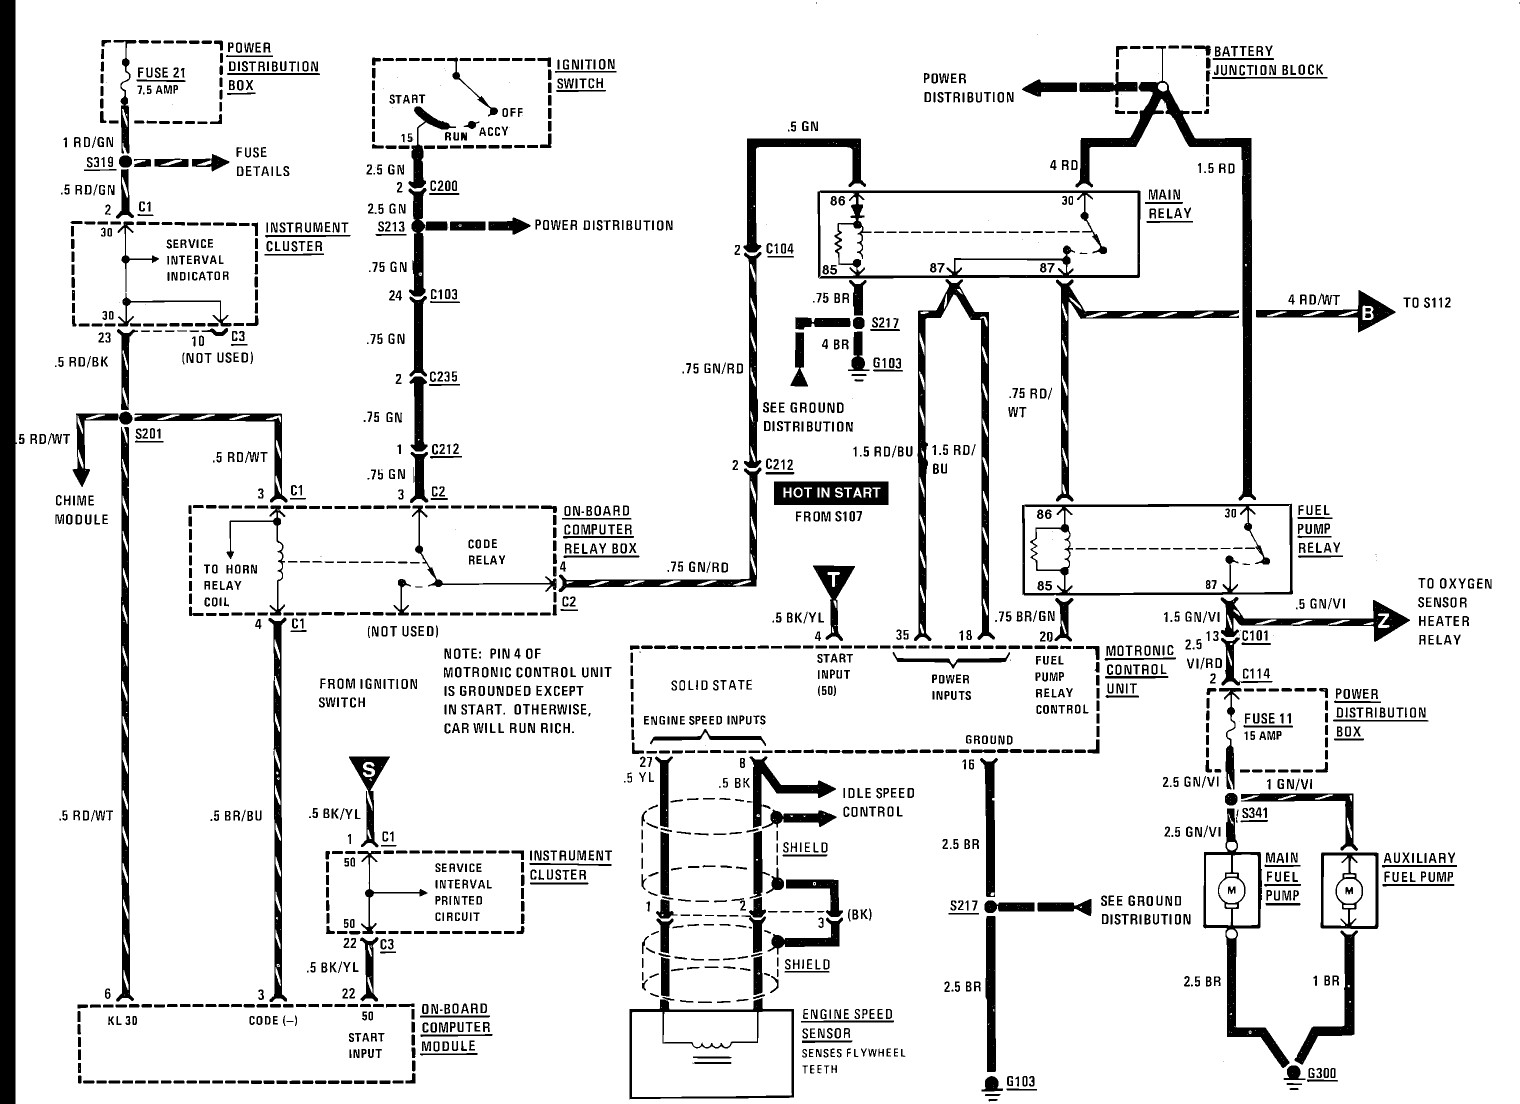 hight resolution of 2007 bmw x5 wiring diagram wiring diagram dat 2007 bmw x5 wiring diagram